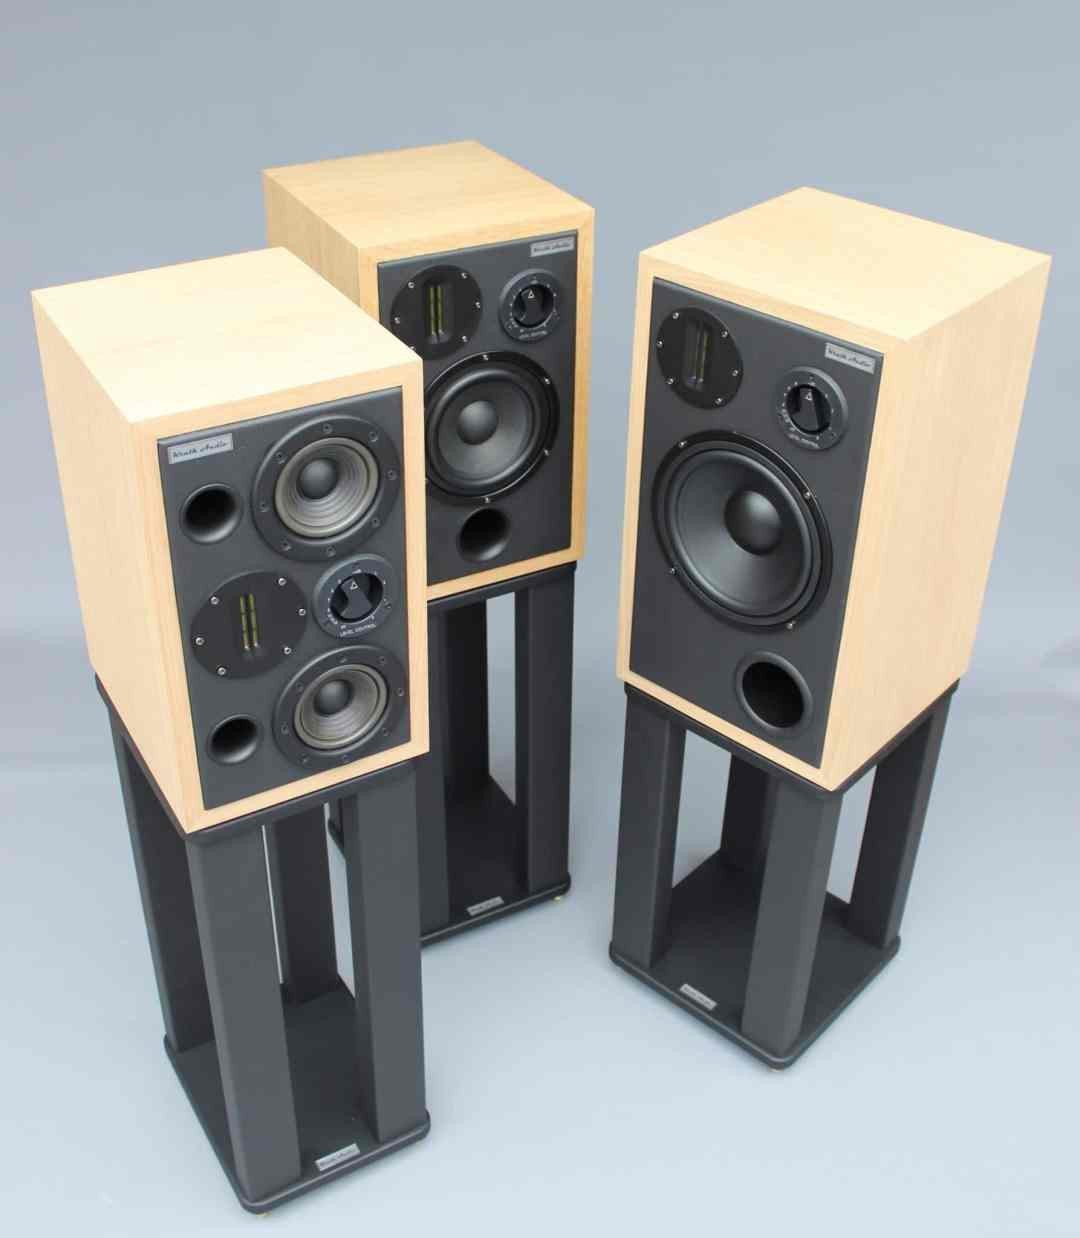 TDB Speakers Launched By Kralk